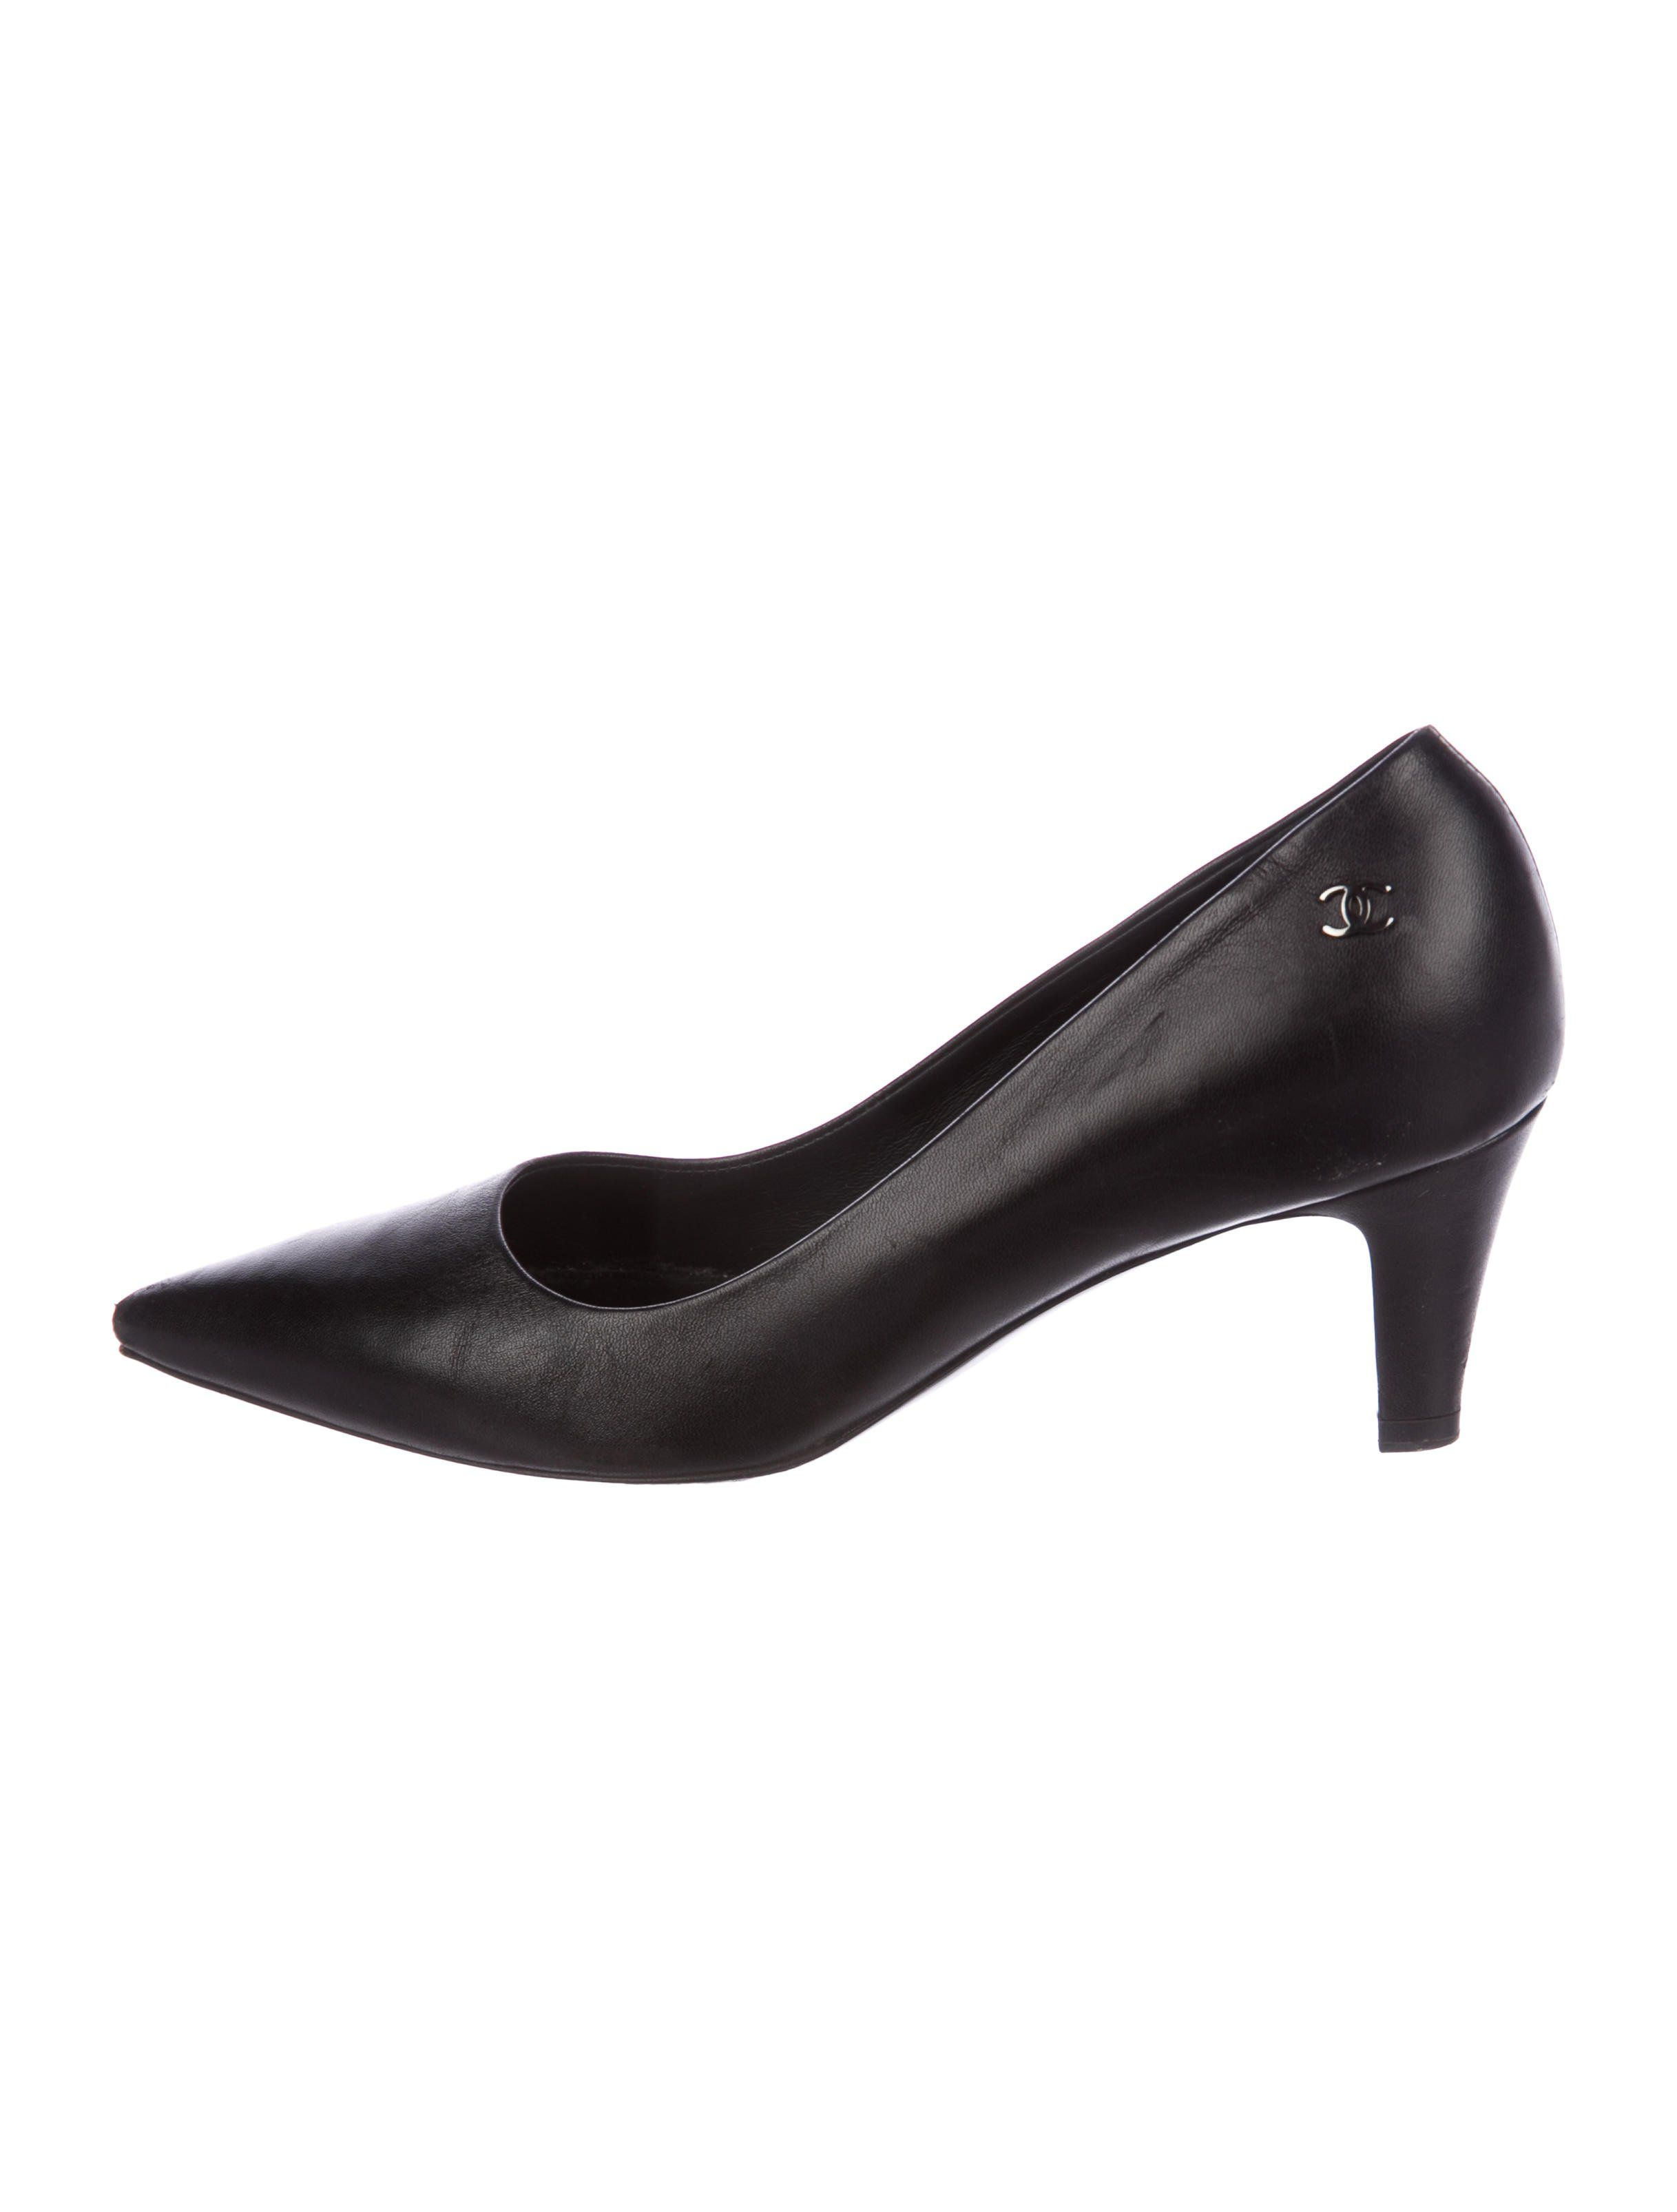 151e23f02821 Black leather Chanel pointed-toe pumps with silver-tone interlocking CC at  sides and covered heels.